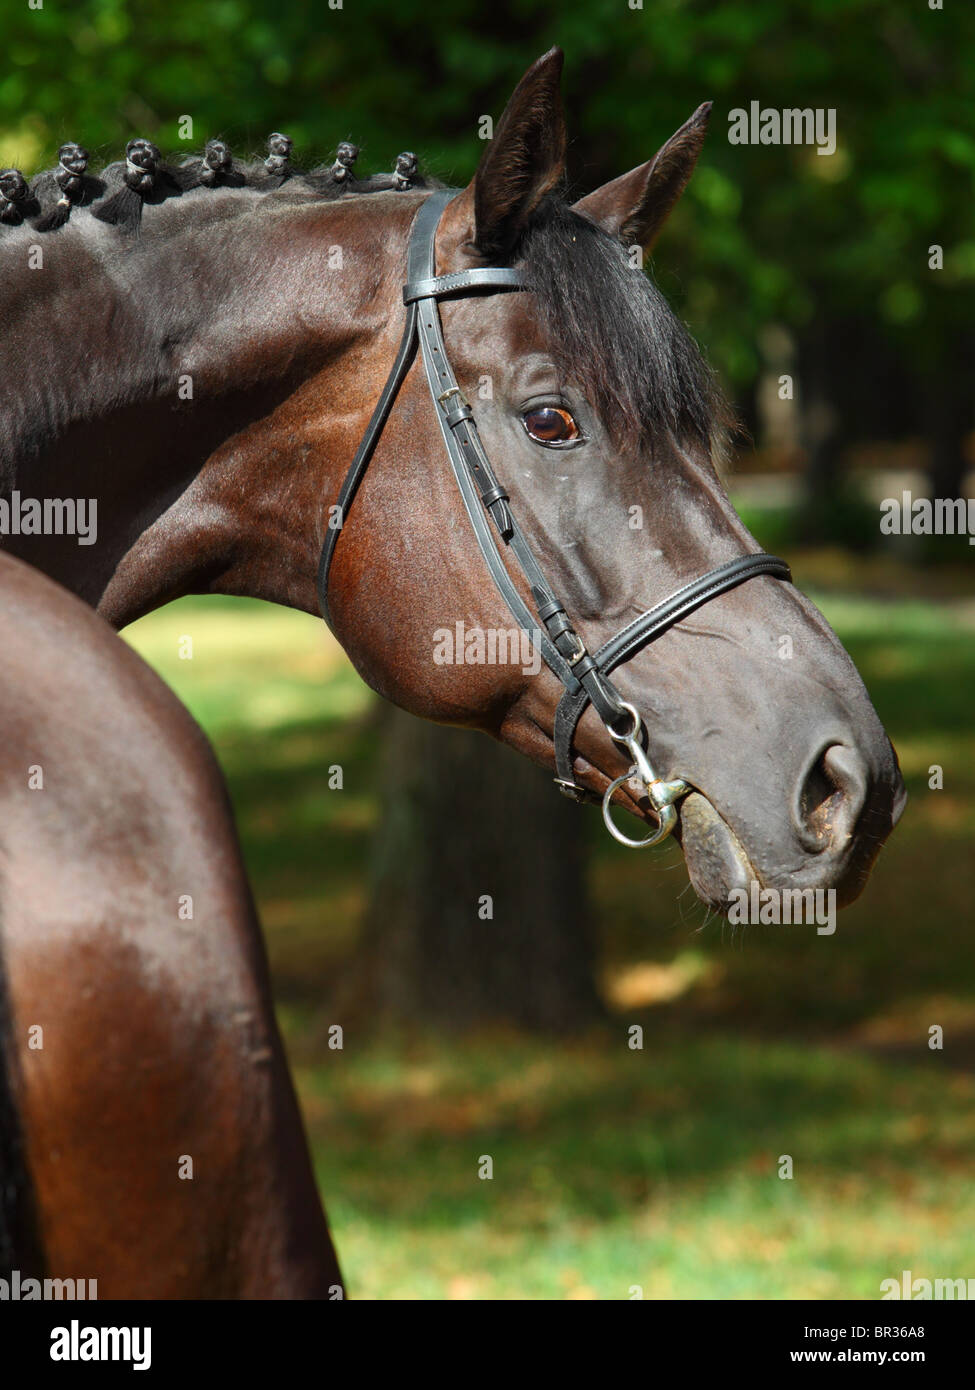 Sideview and close up of a bay horse head - Stock Image